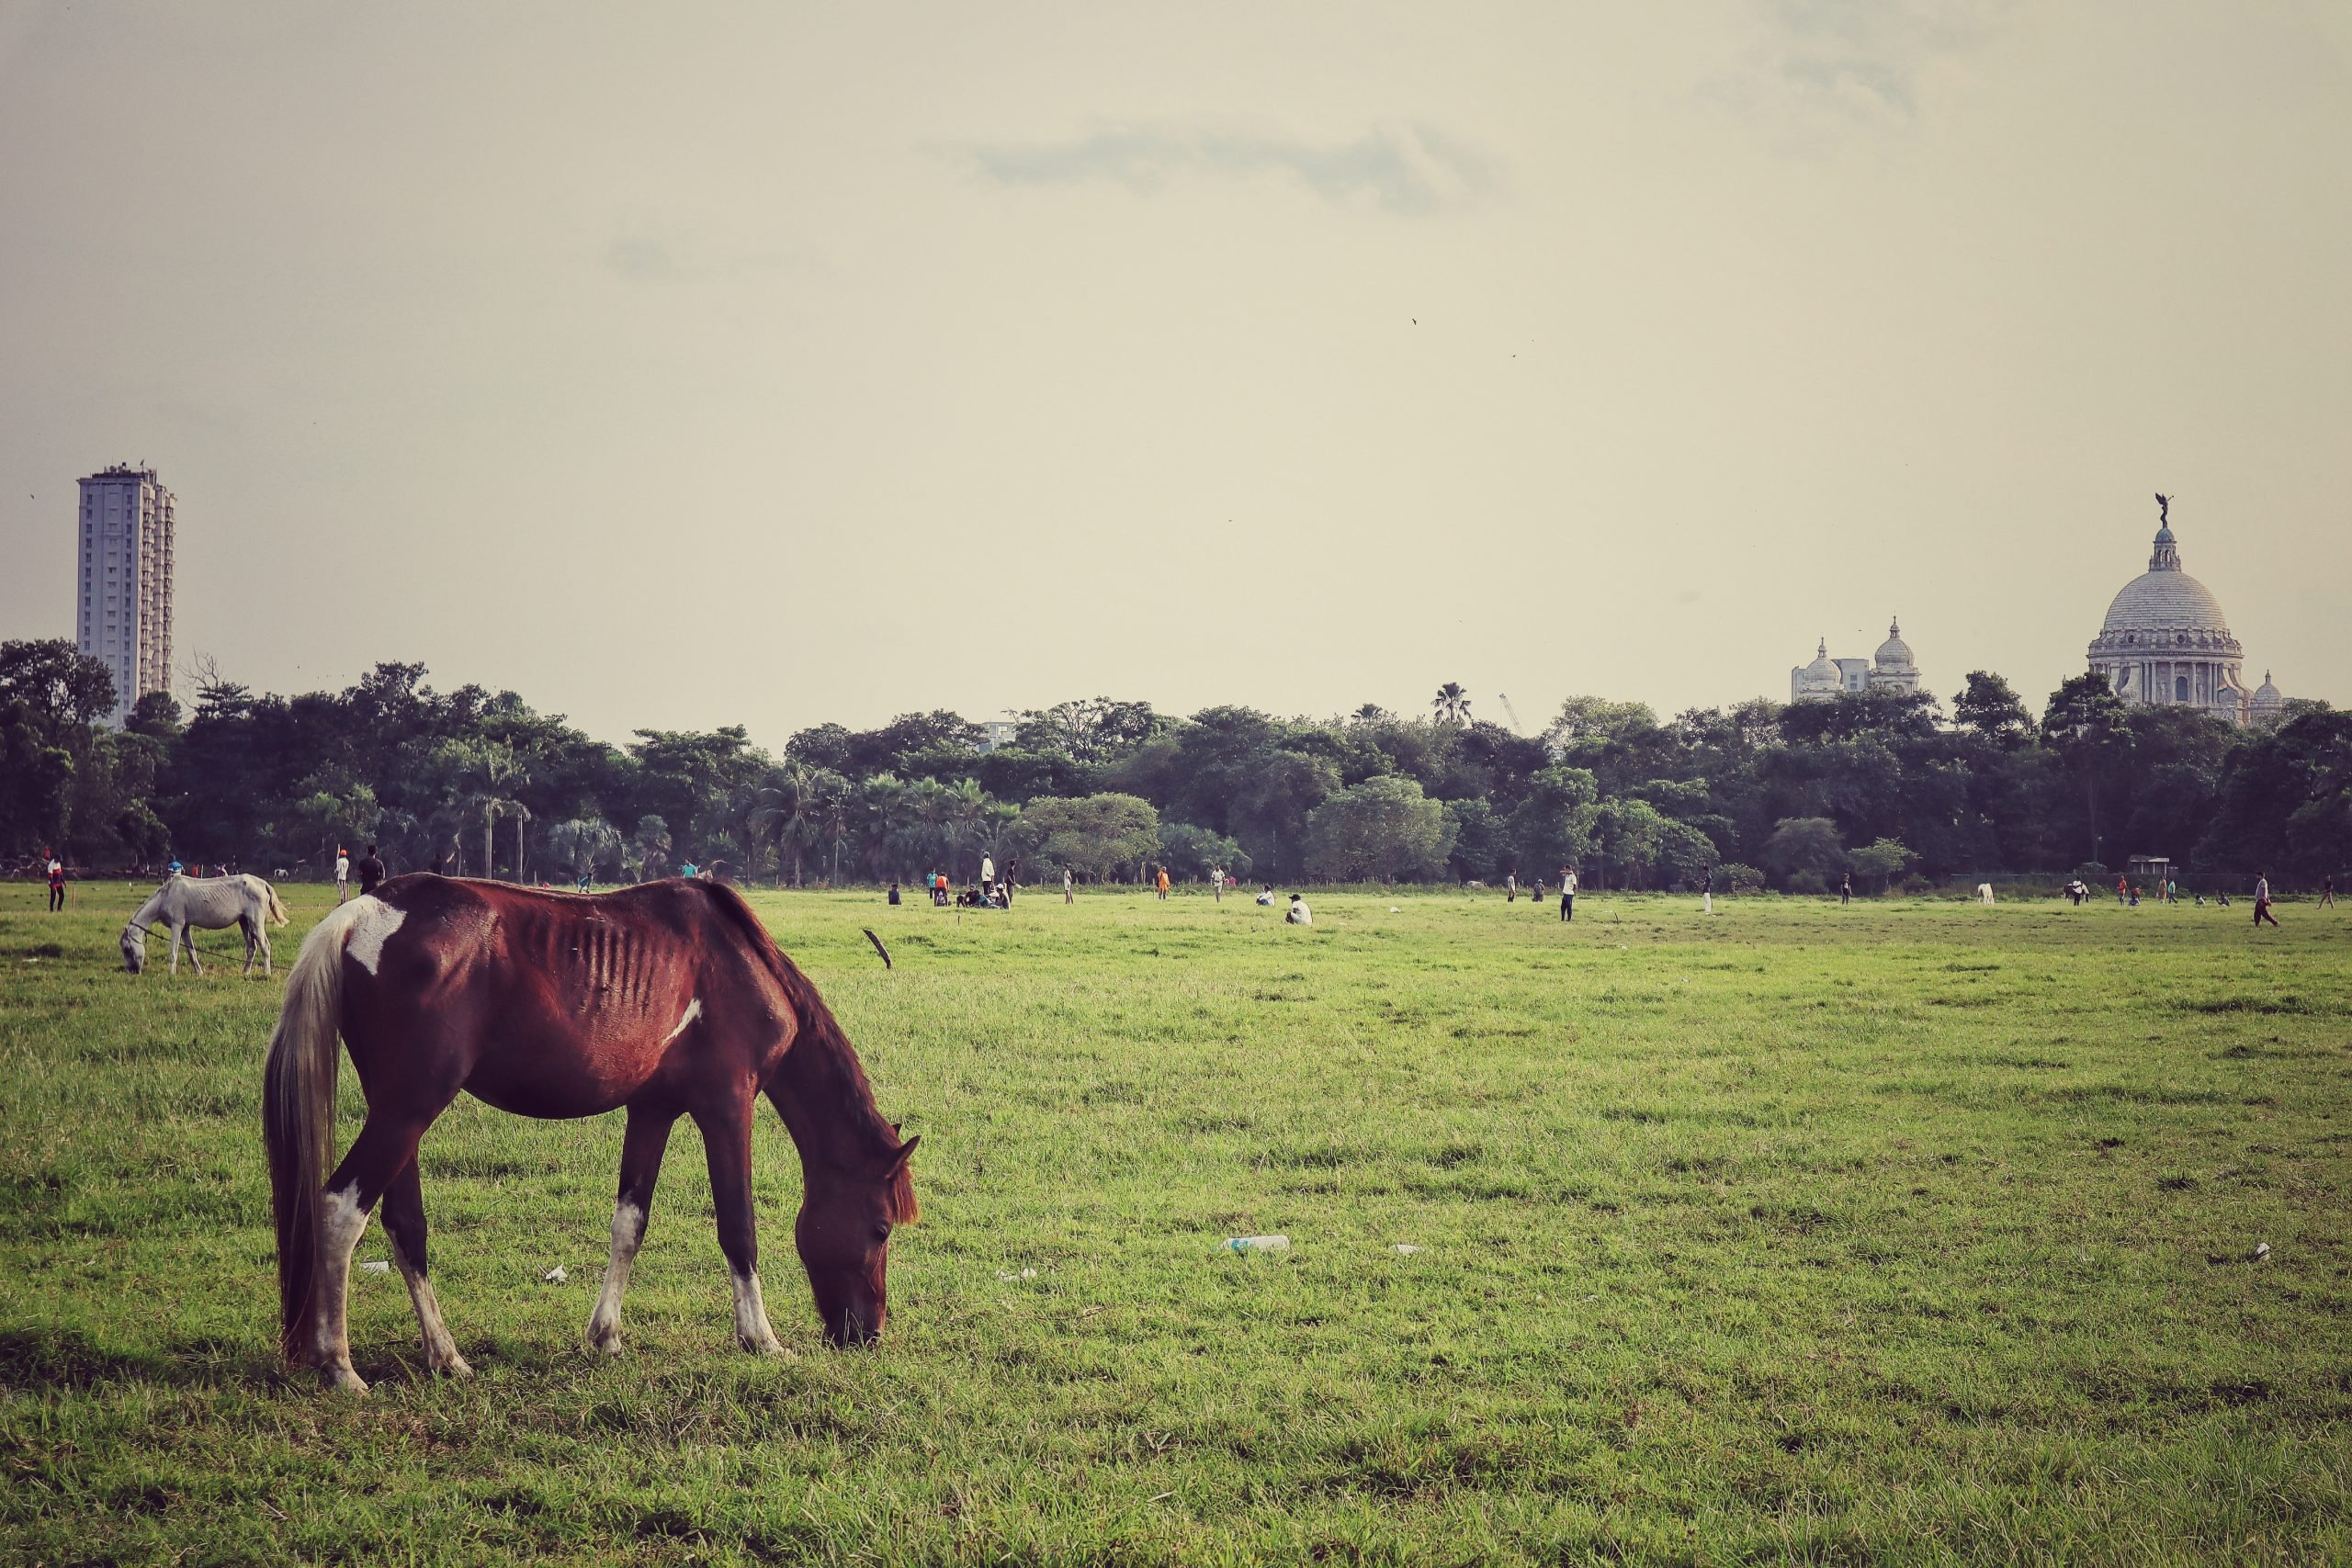 Horse grazing in filed